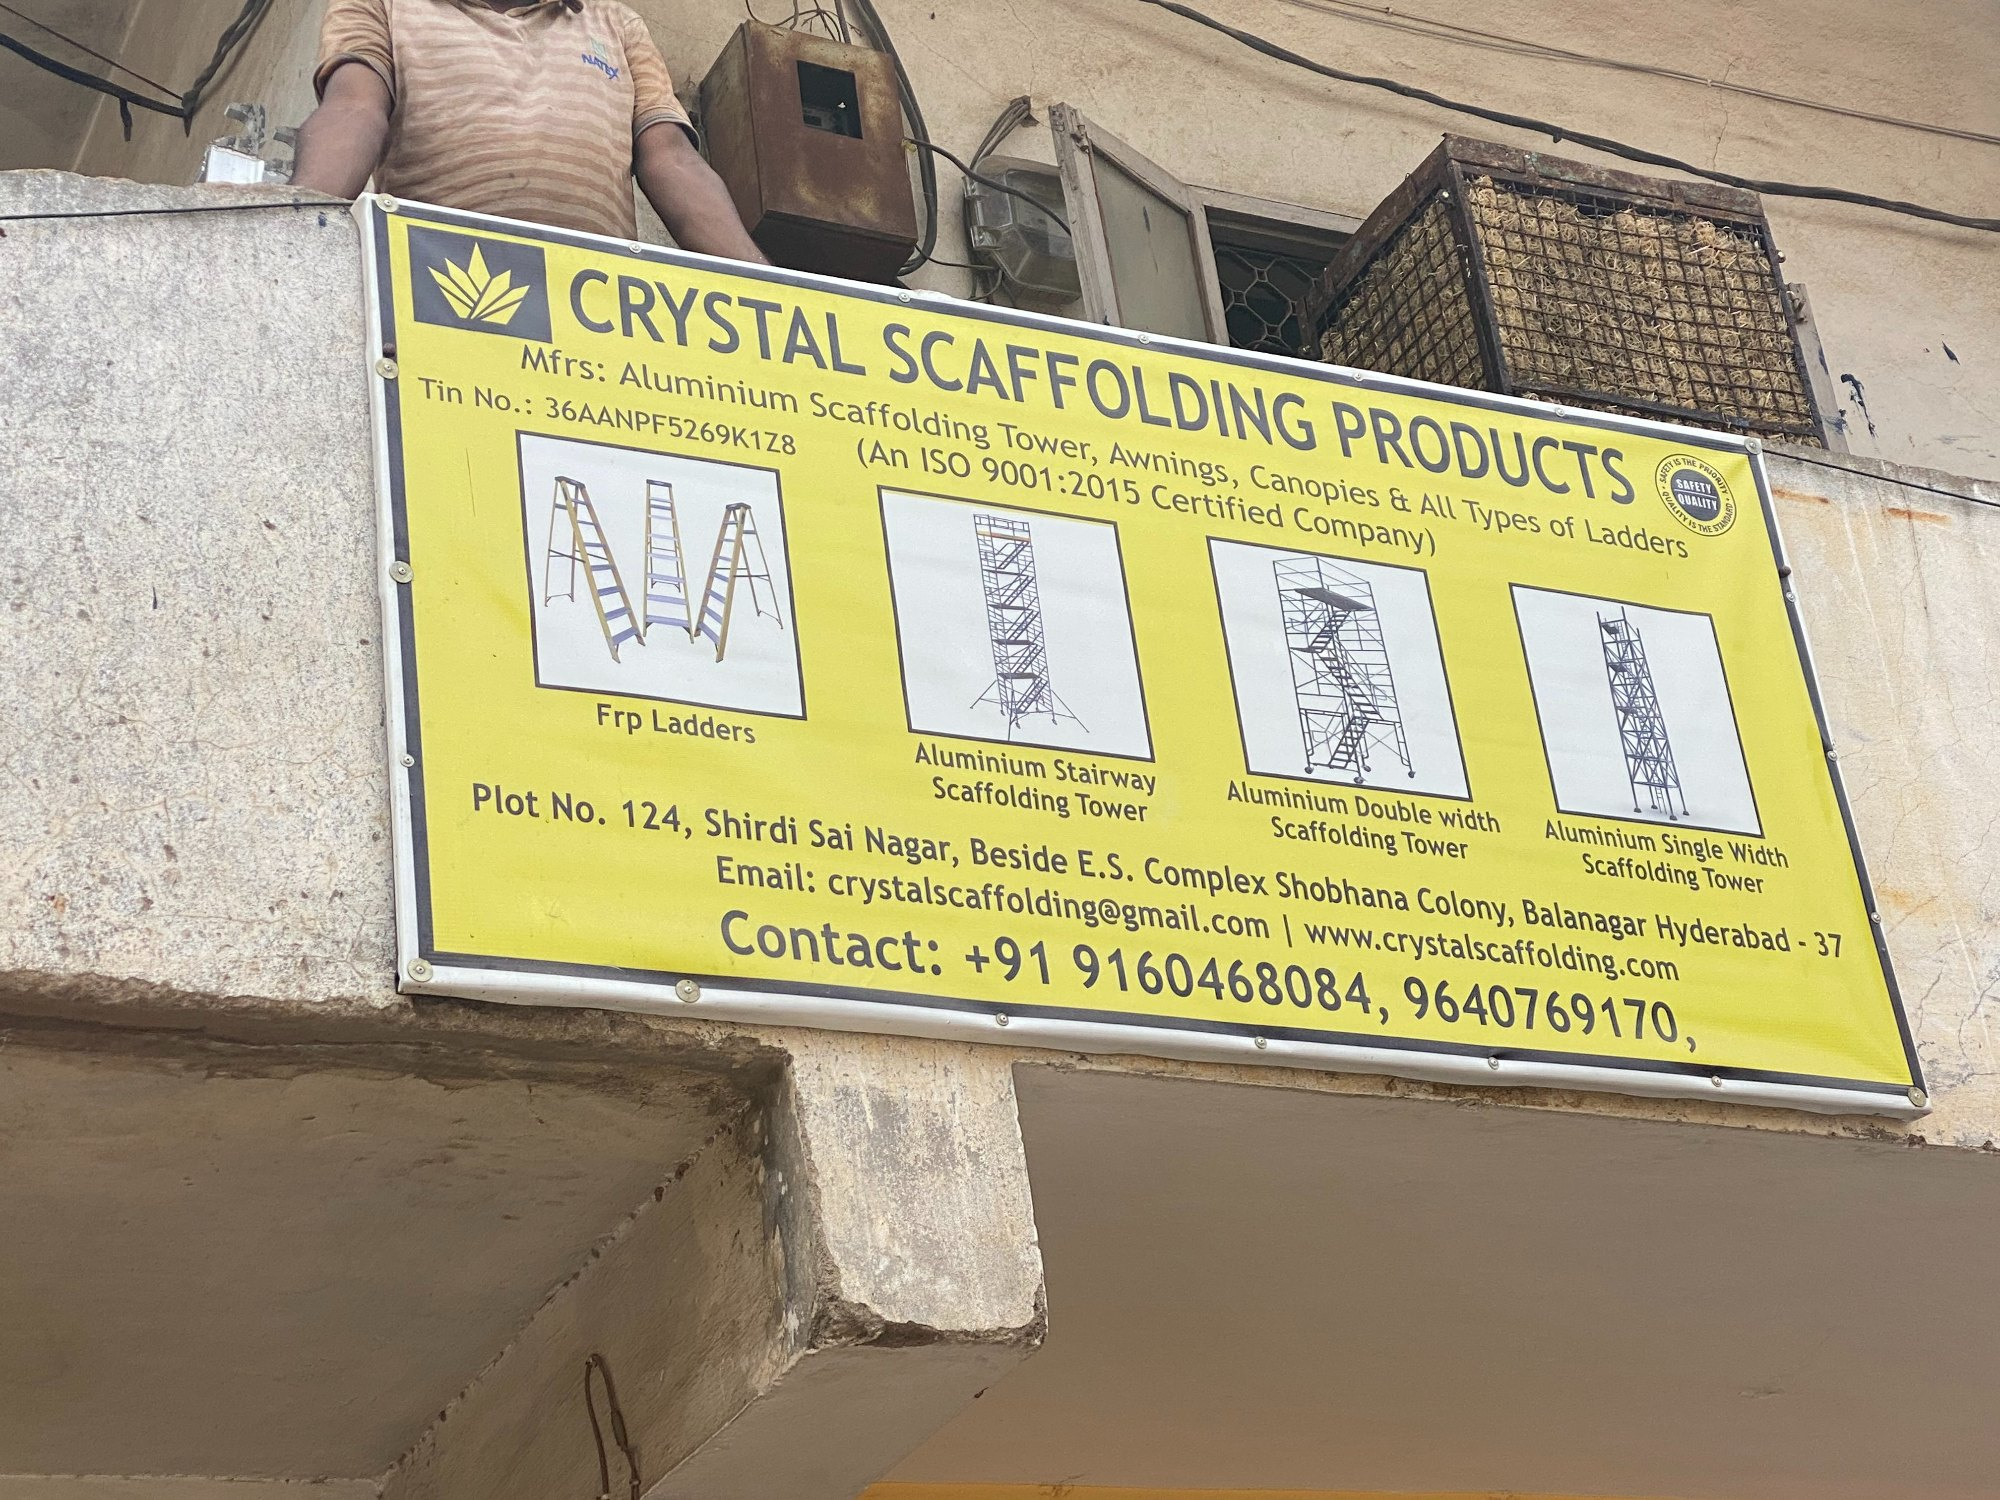 CRYSTAL SCAFFOLDING PRODUCTS